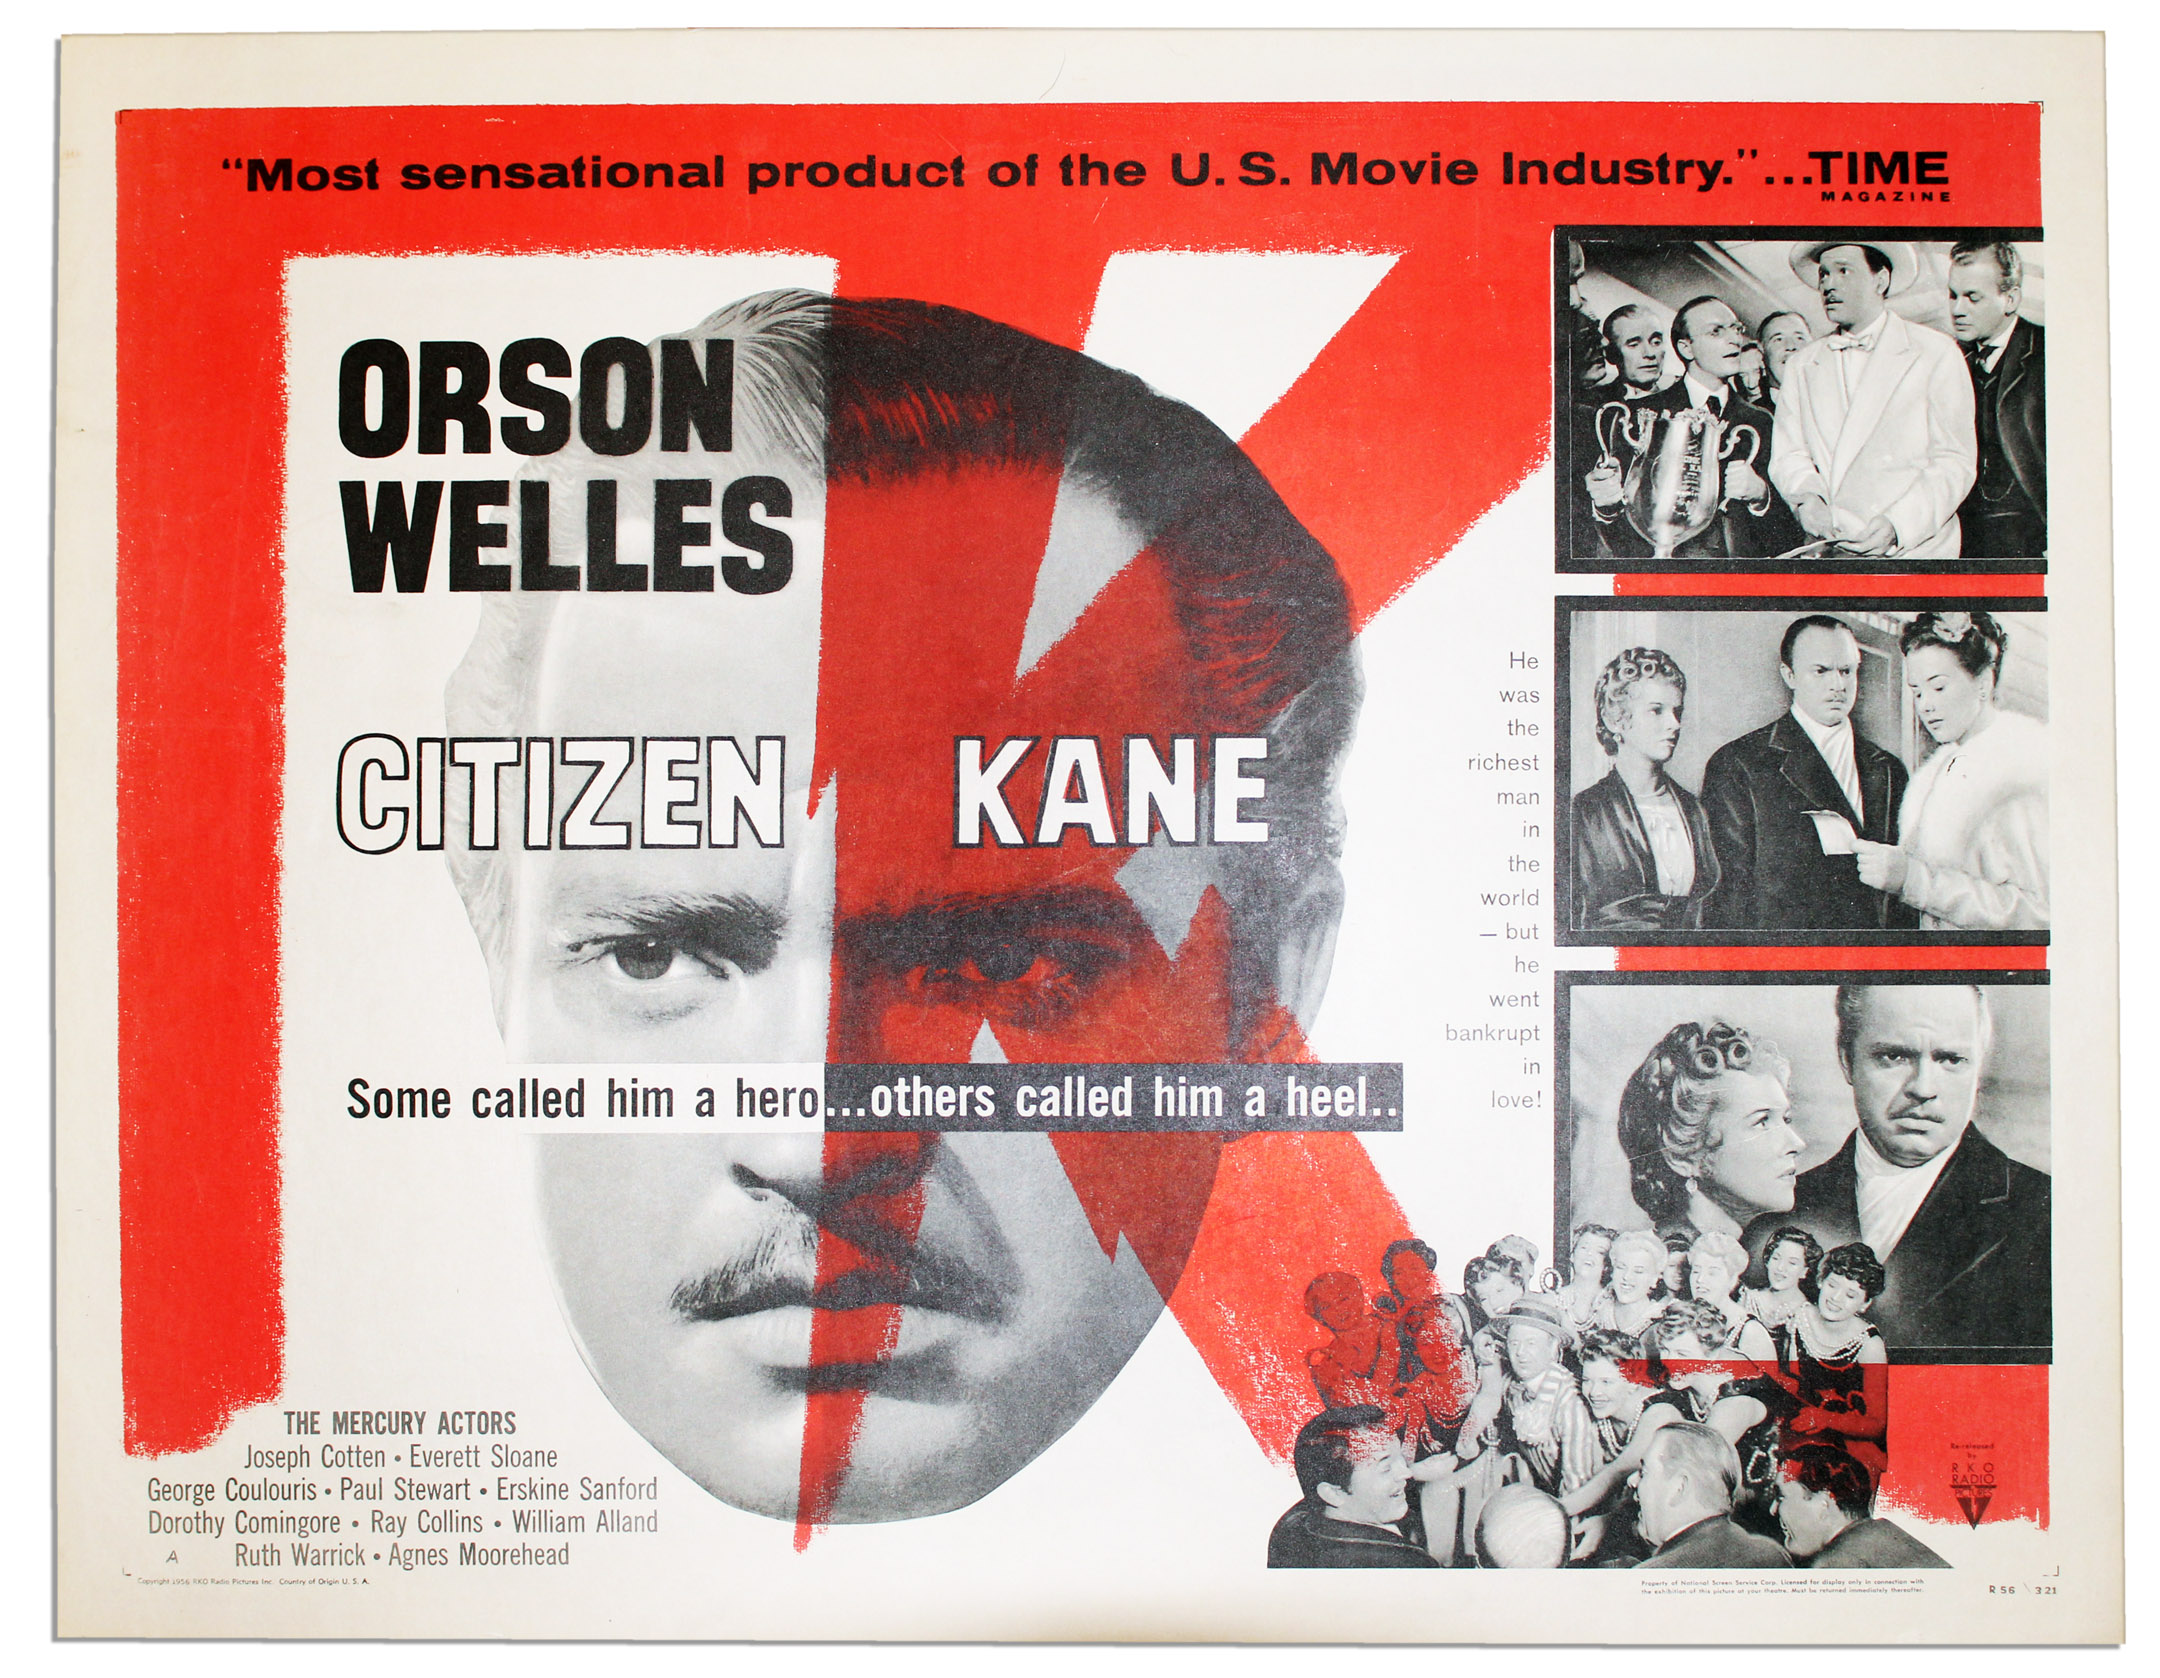 the 1941 film citizen kane Citizen kane - 16mm film - 1941 - orson welles a nice and very rare 16mm film the film is complete and good condition these details is not serious and does not affect the story it is very difficult to find a copy of this film | ebay citizen kane - 16mm film - 1941 - orson welles a nice and very rare 16mm film.